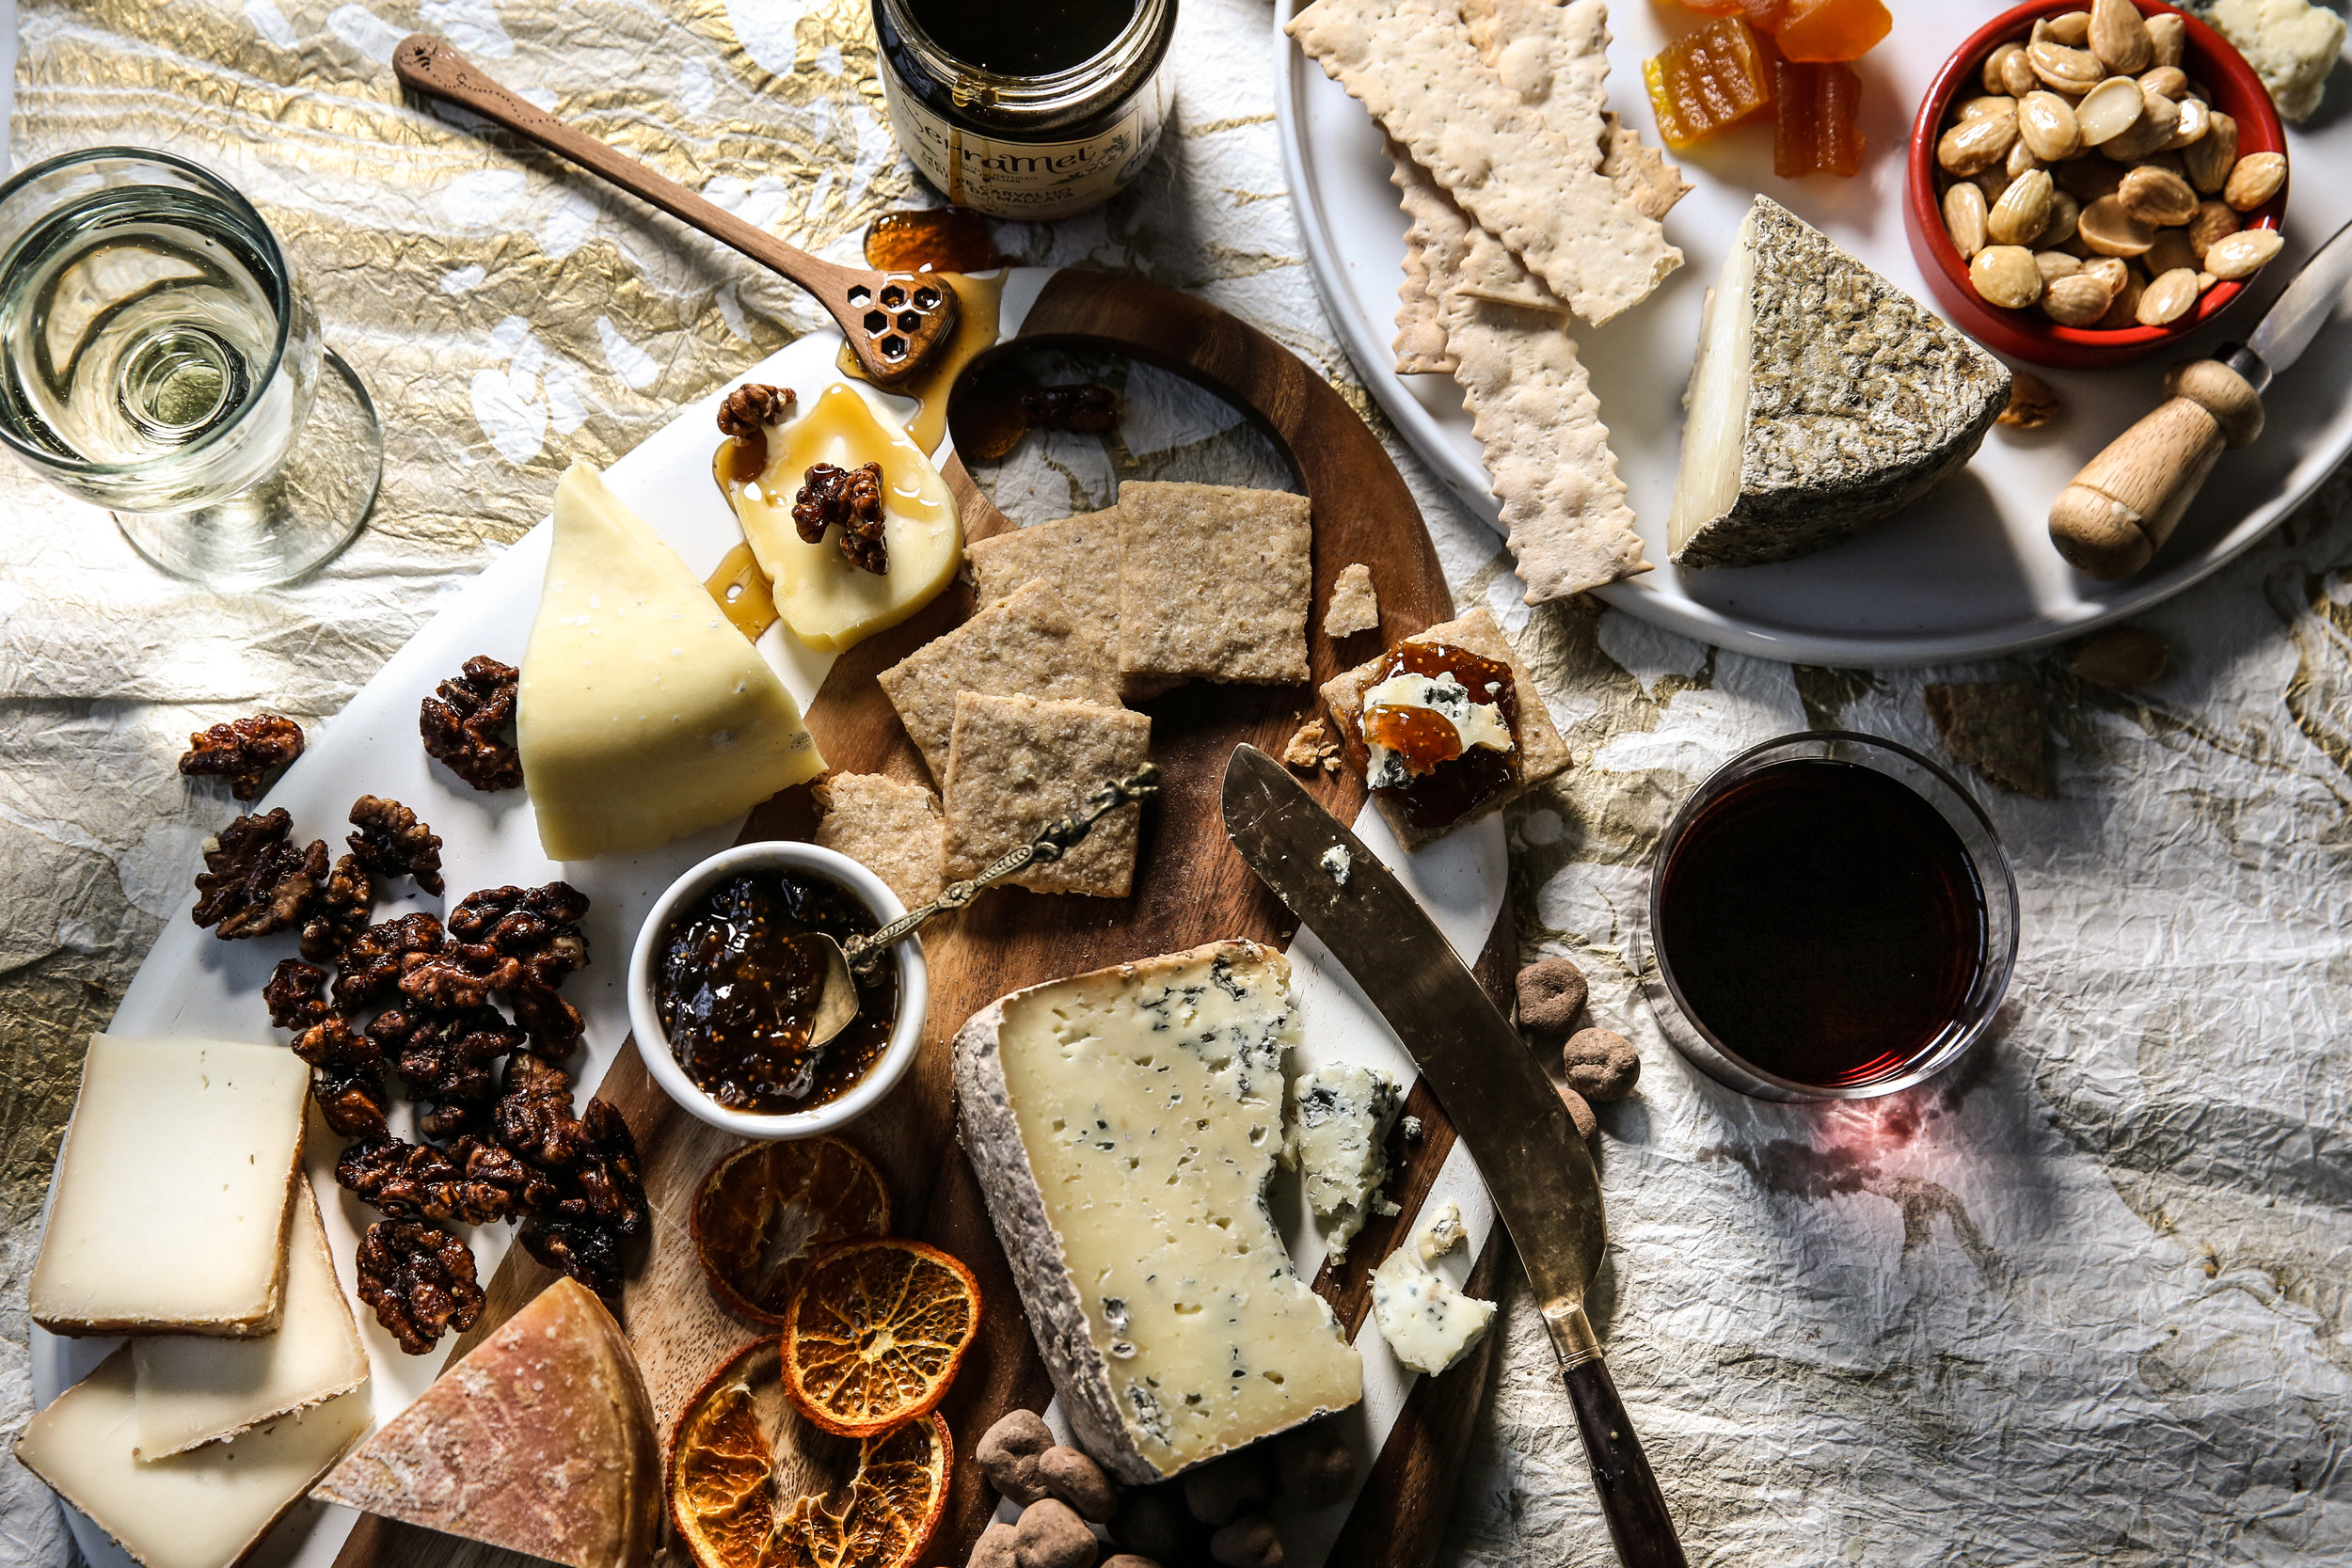 ardai-cheese-board-with-random-accoutrements-moodier.jpg